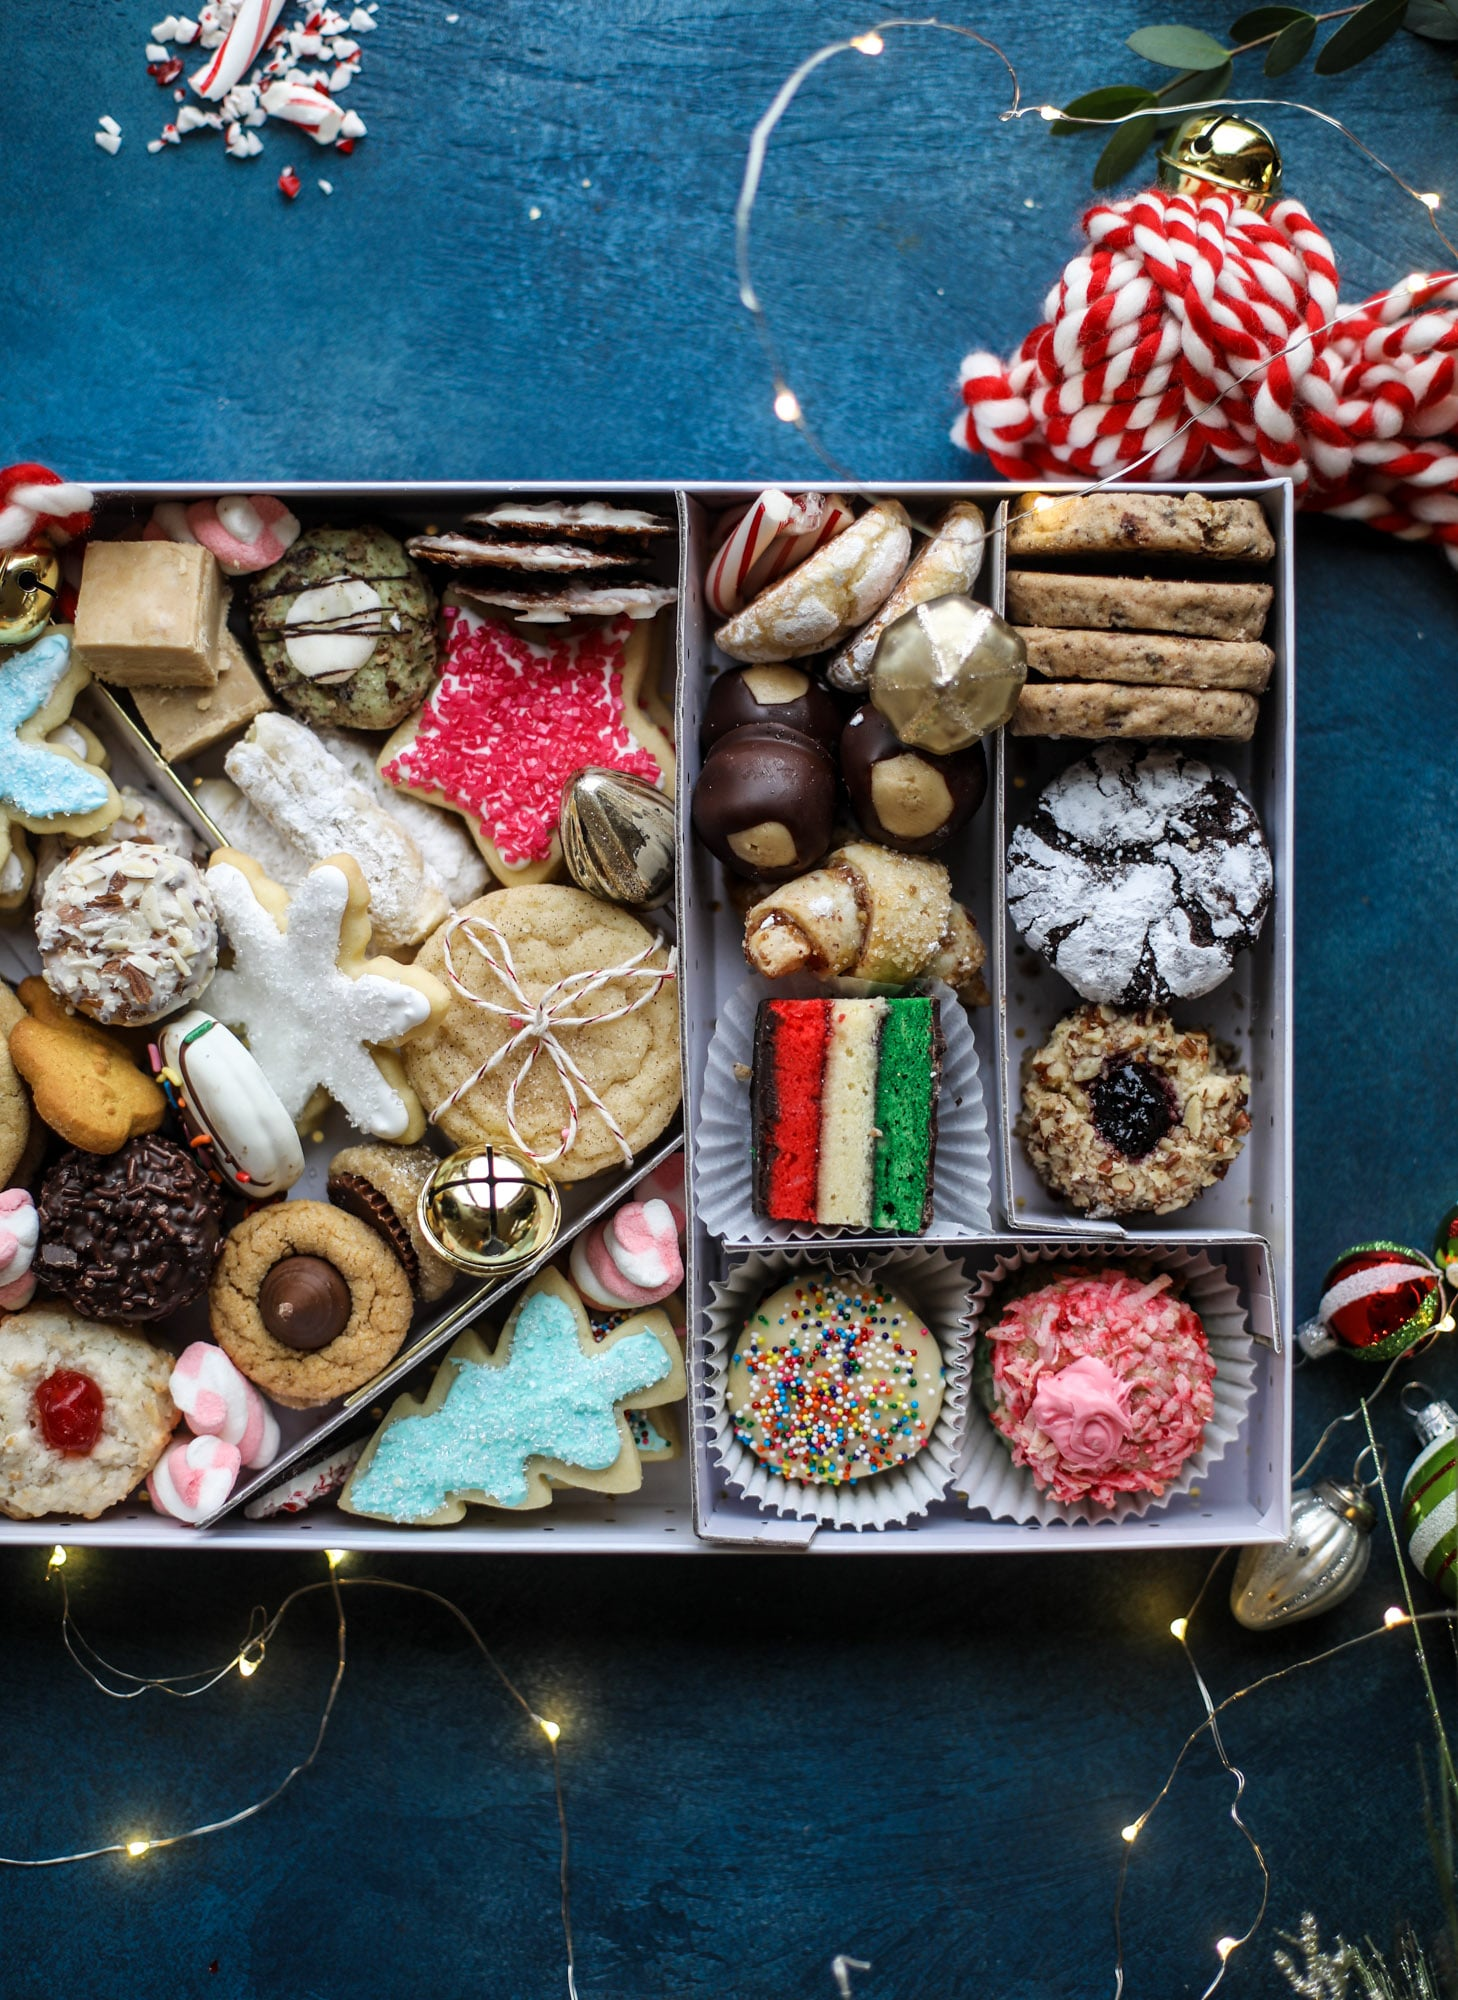 This list is made up of my 2018 best cookies to bake for Christmas and the holiday season! These are tried and true favorites that our friends and family love - ones we put on our cookie trays every single year! I howsweeteats.com #cookies #christmas #box